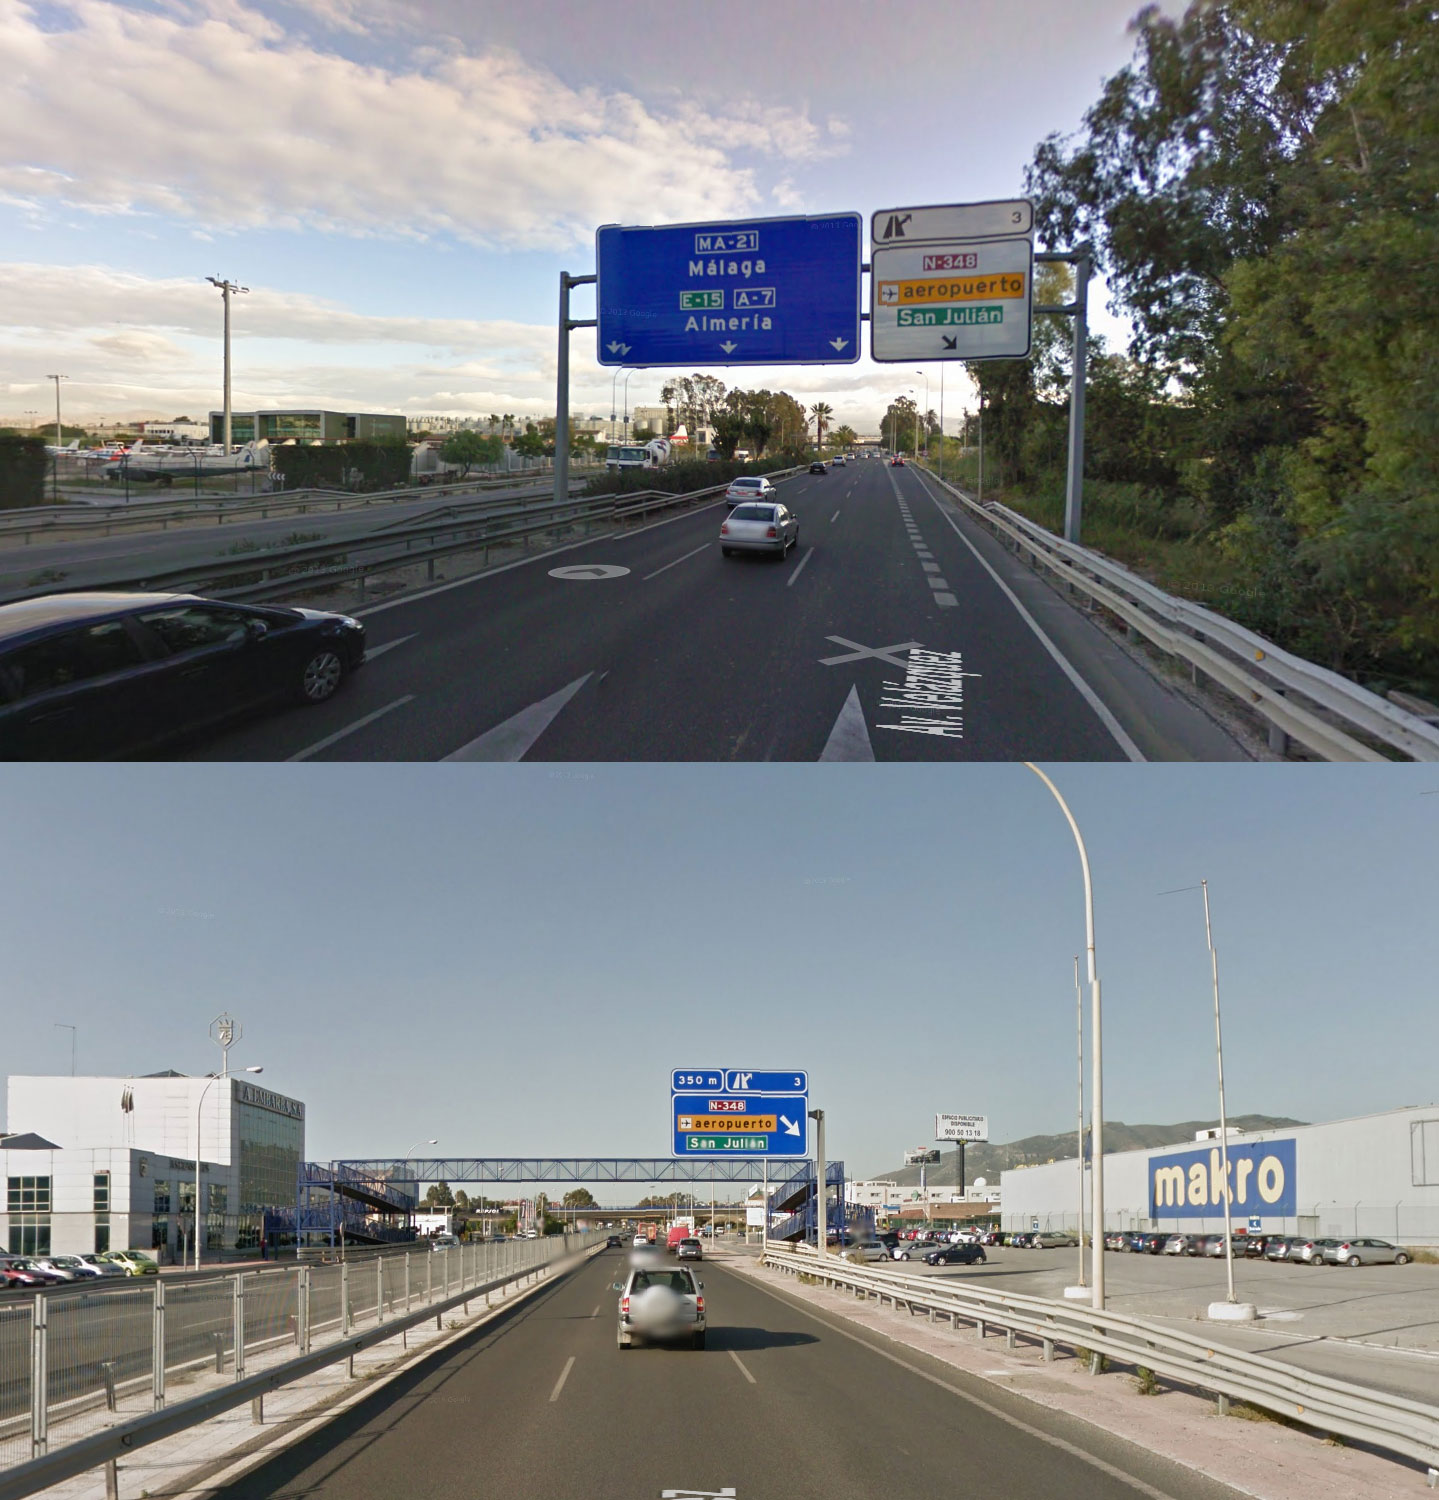 Street View Captures of the old access (EXIT NO 3 SAN JULIAN AEROPUERTO), coming from the Western Costa del Sol (picture 1) and Malaga / Eastern Costa del Sol (picture 2).